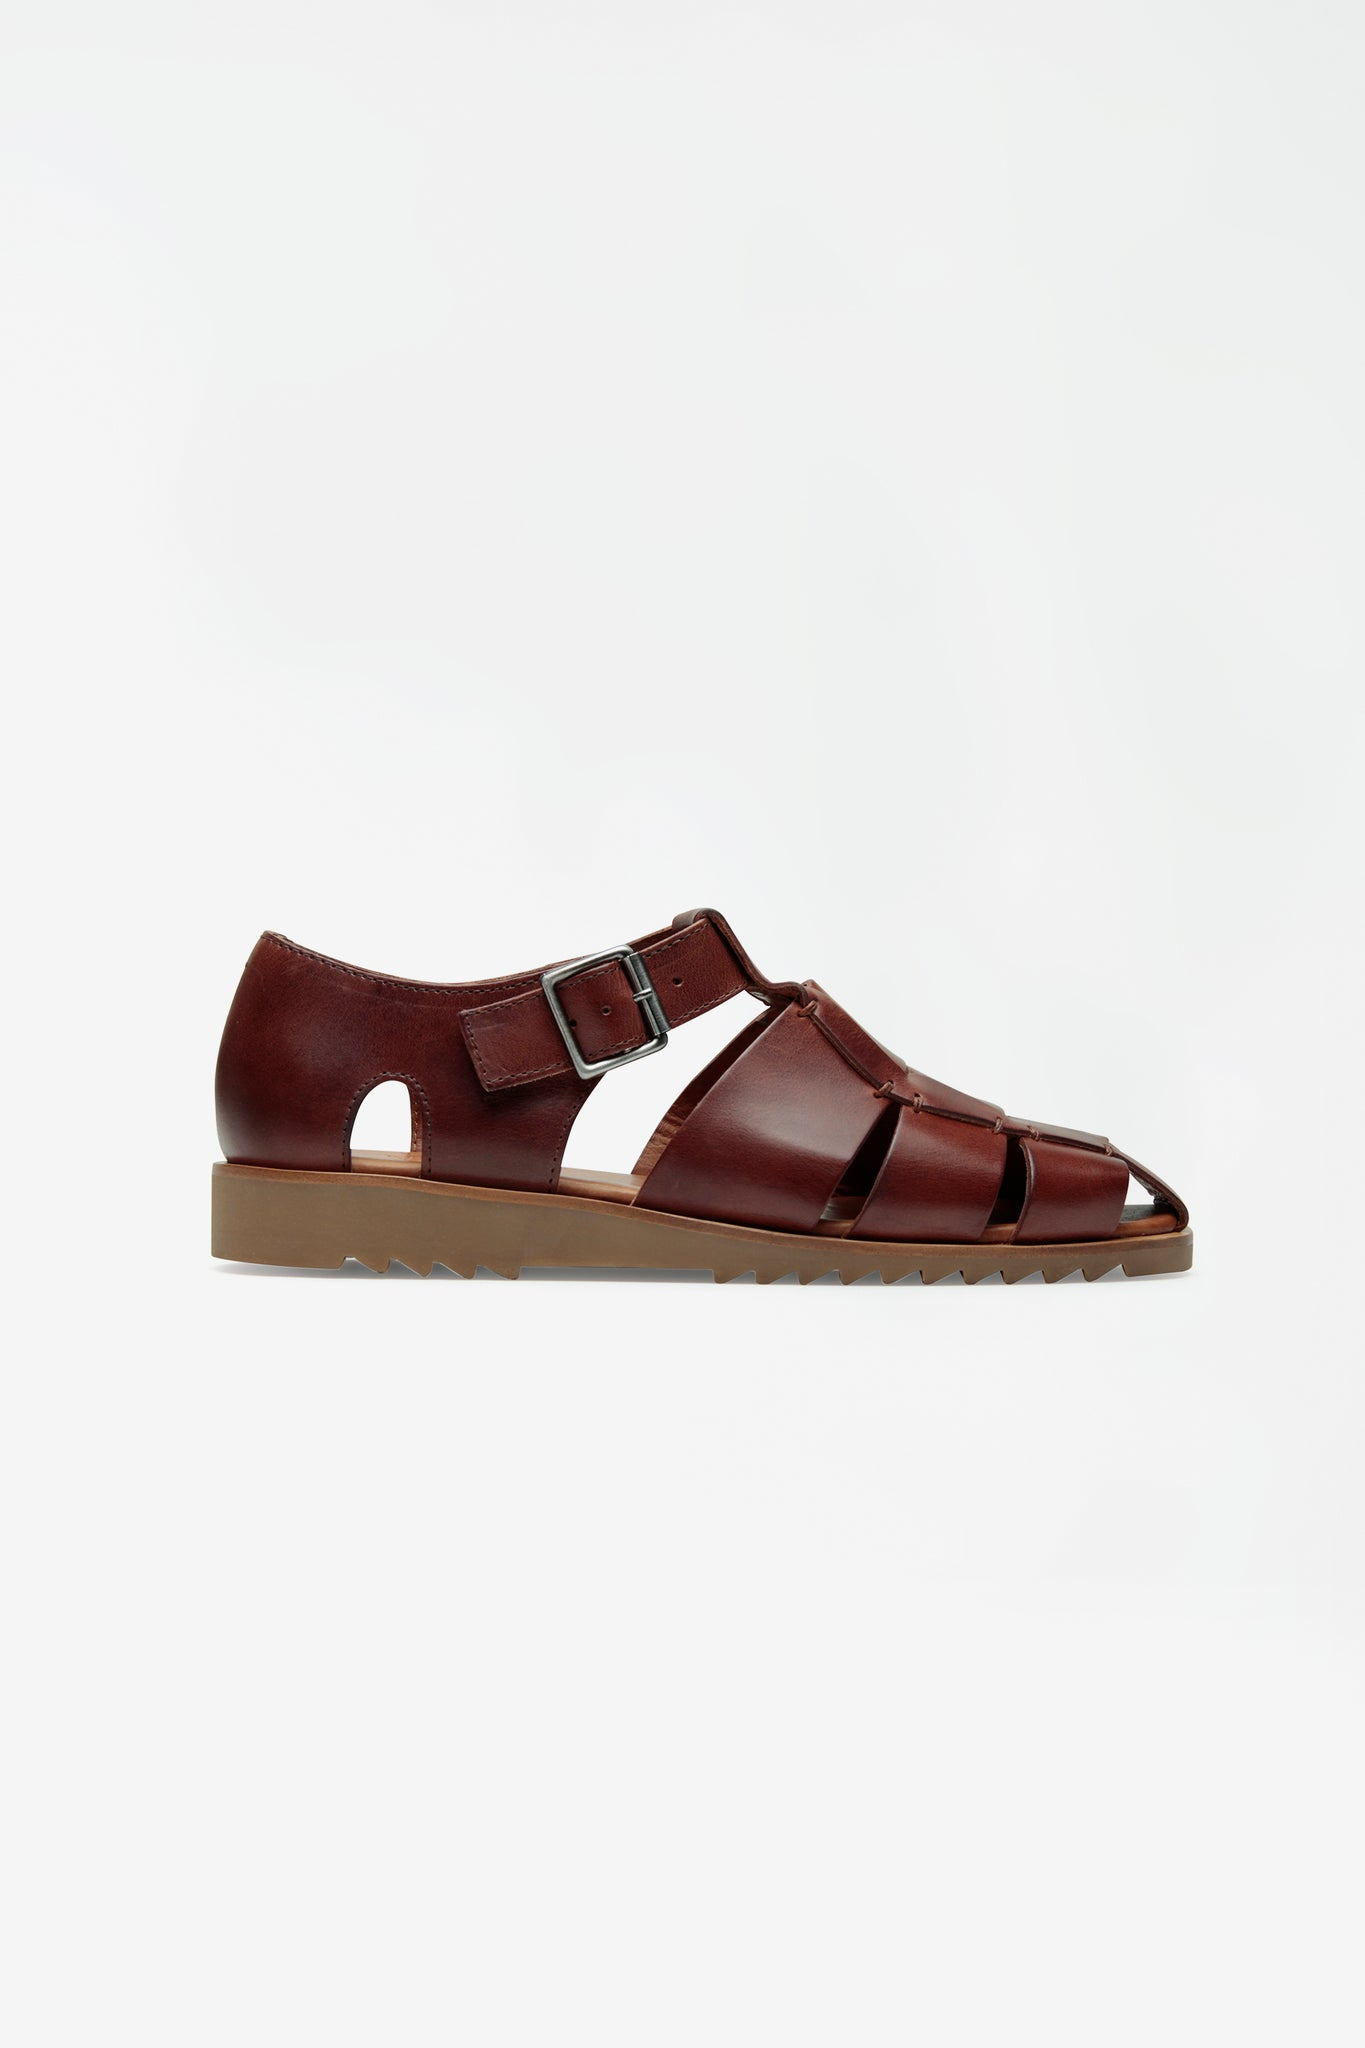 Pacific Sport sandals miel-vegetal marron